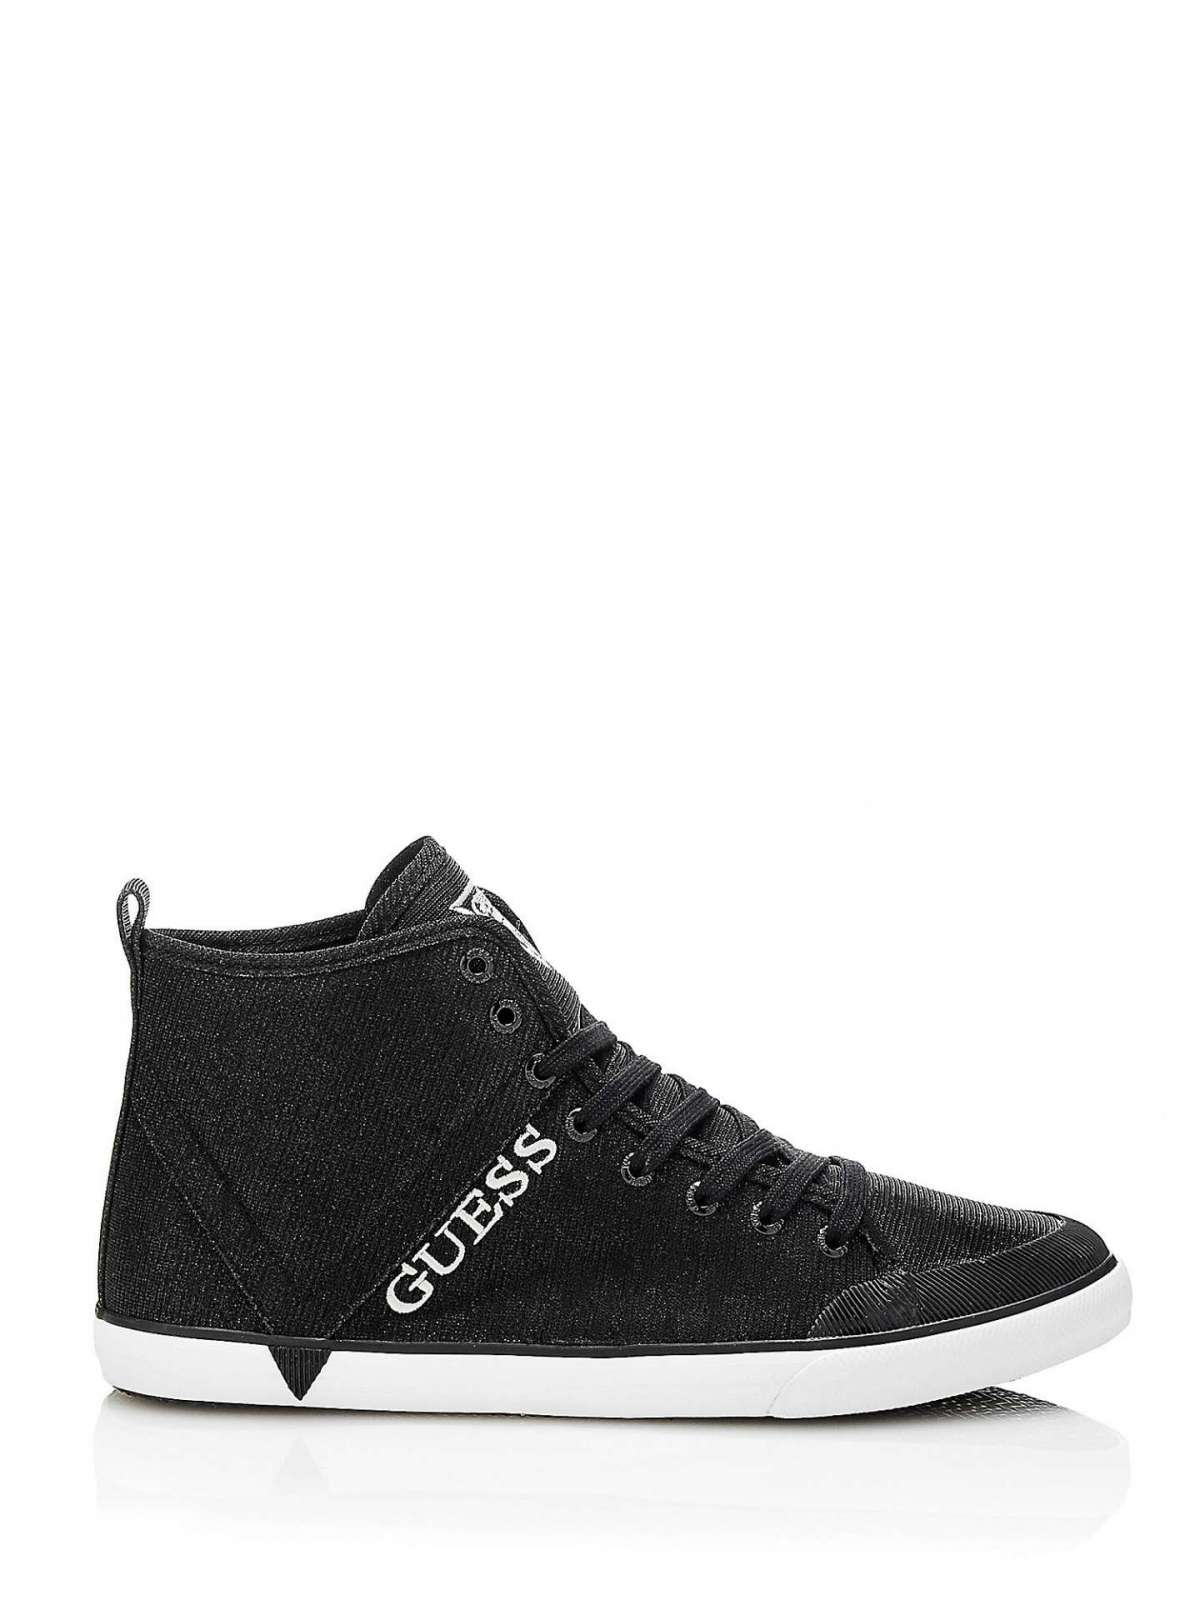 Sneakers Nere Guess Autunno Inverno 2017